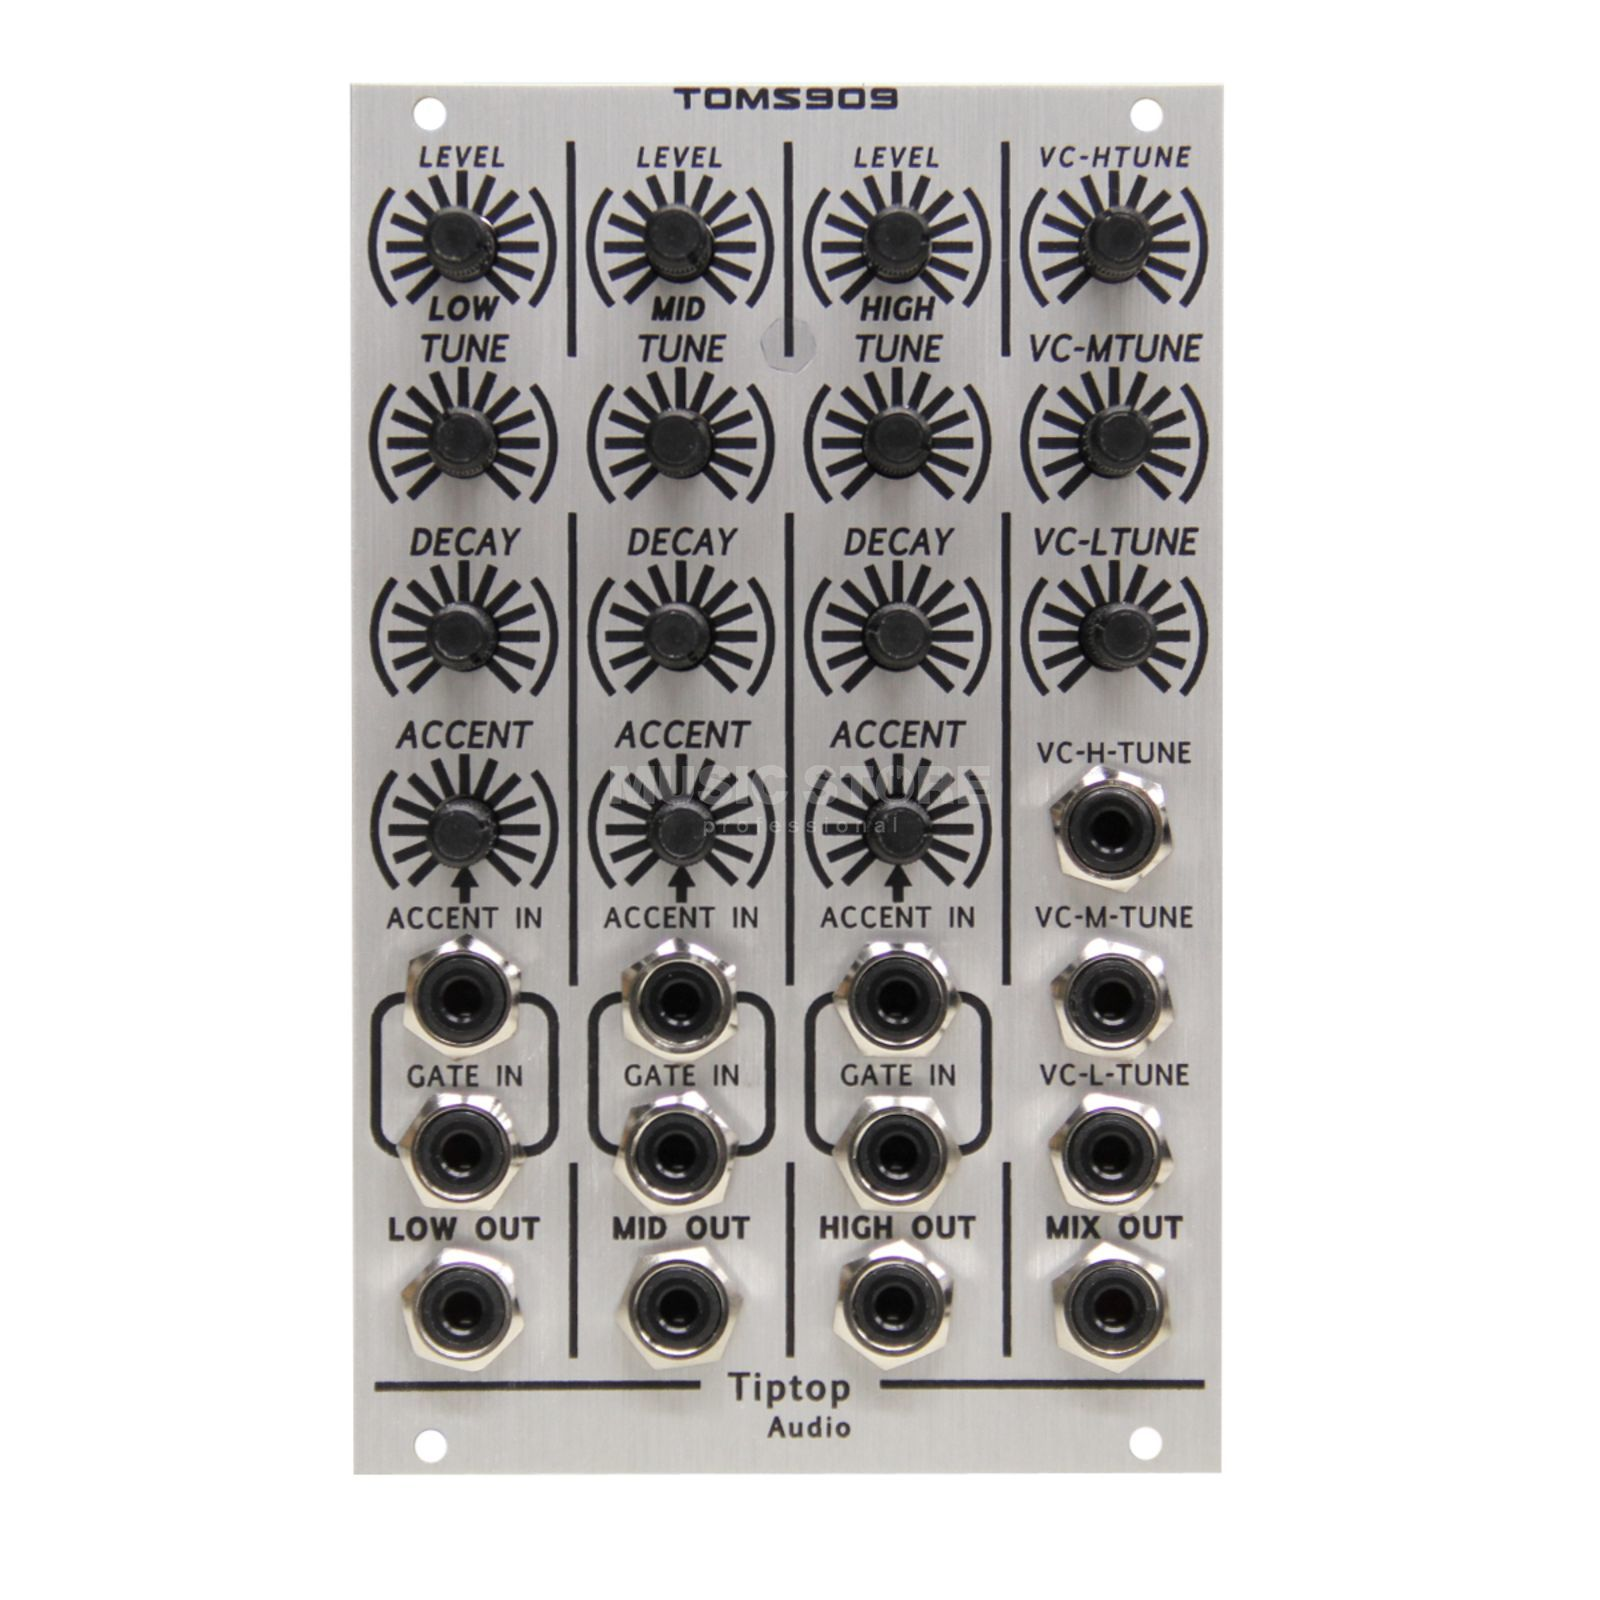 Tiptop Audio TOMS909 Product Image